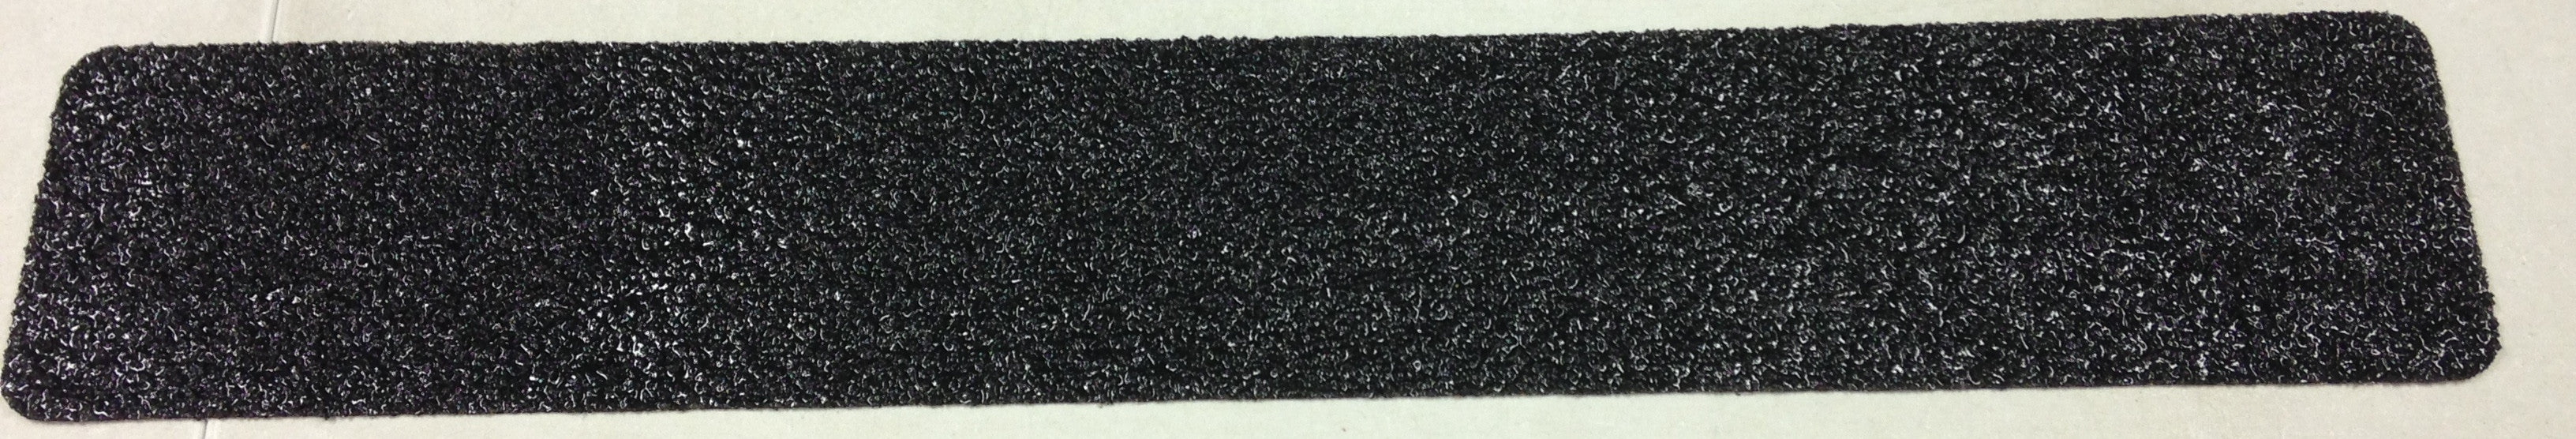 "6"" X 24"" Tread BLACK Extreme Adhesive Heavy Duty Grit - Pkg of 12 - 10 Day Processing"